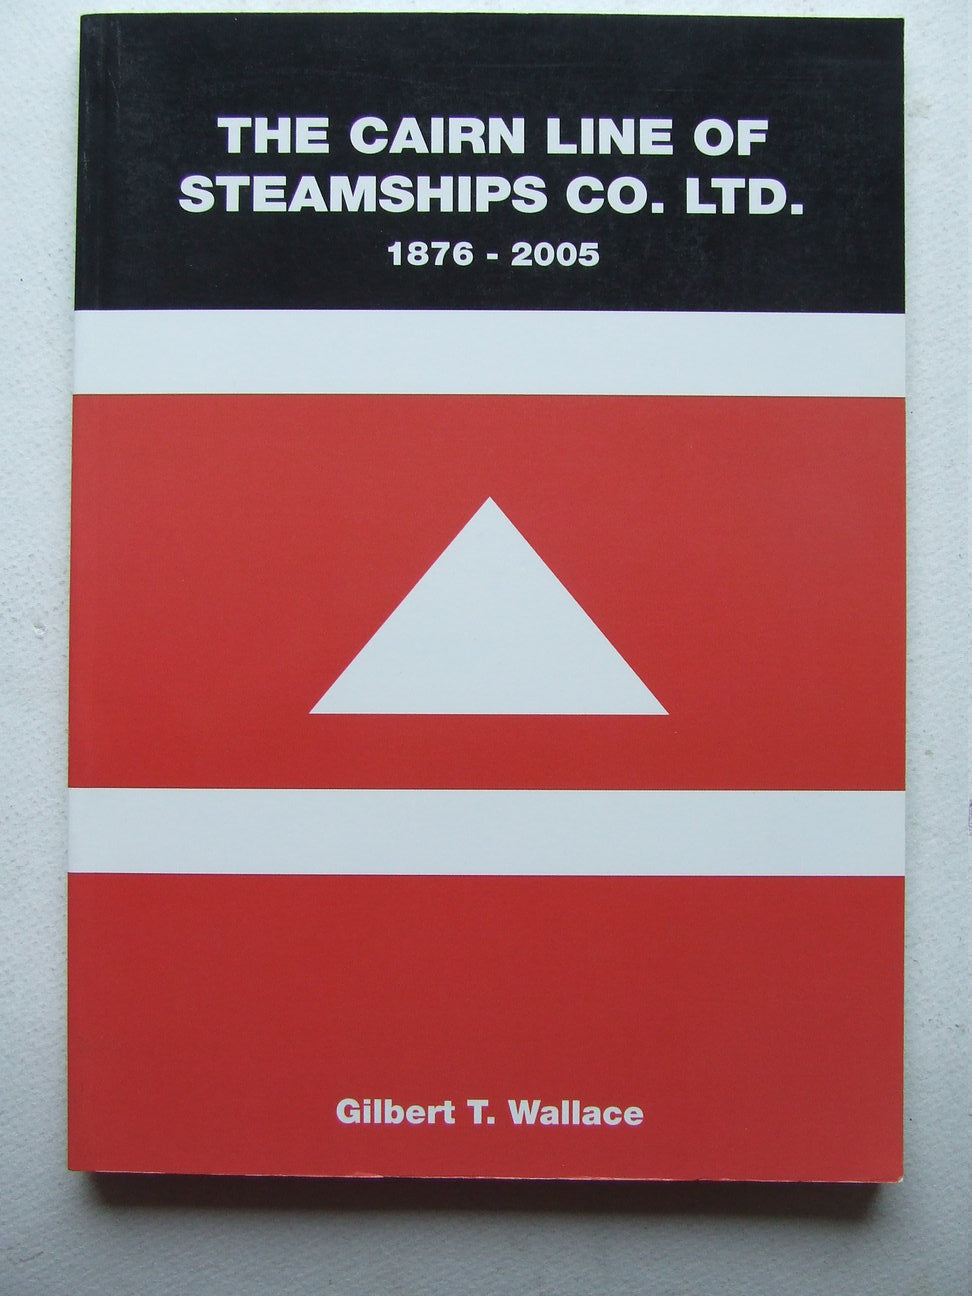 The Cairn Line of Steamships Co.Ltd. 1876-2005